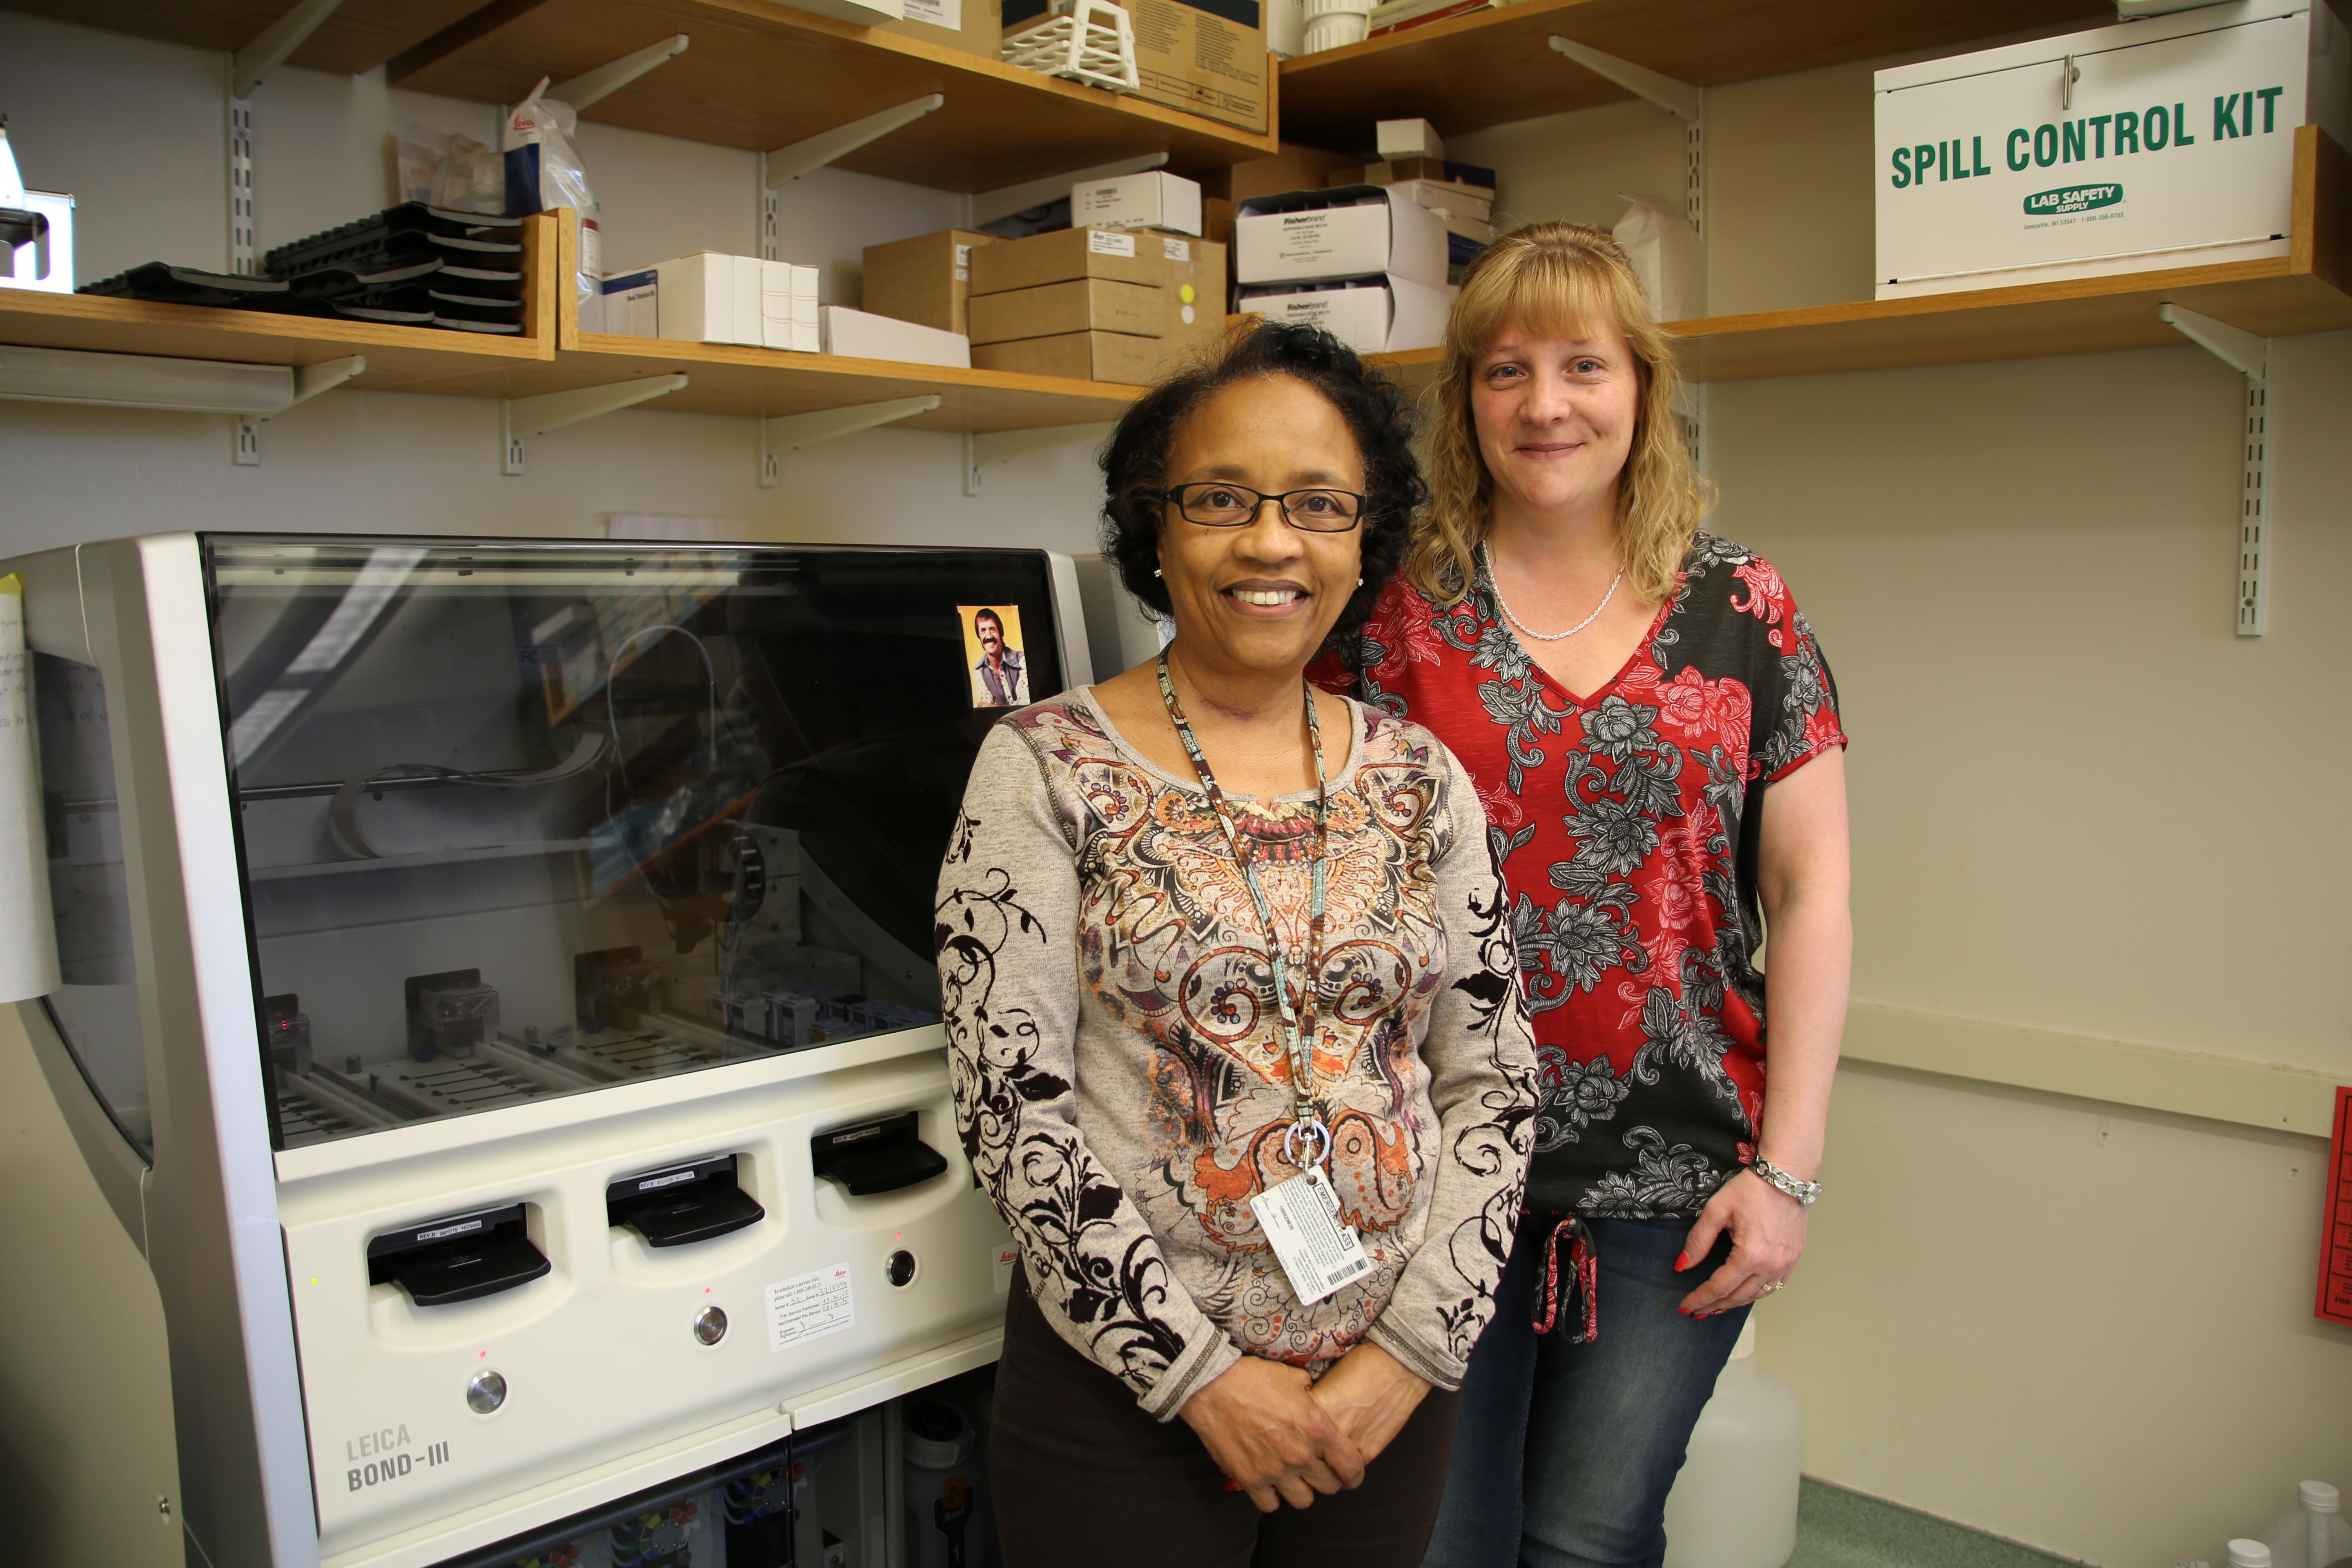 From left: Histology supervisor Donna Skinner and Teresa Bowman, with the team's staining technology